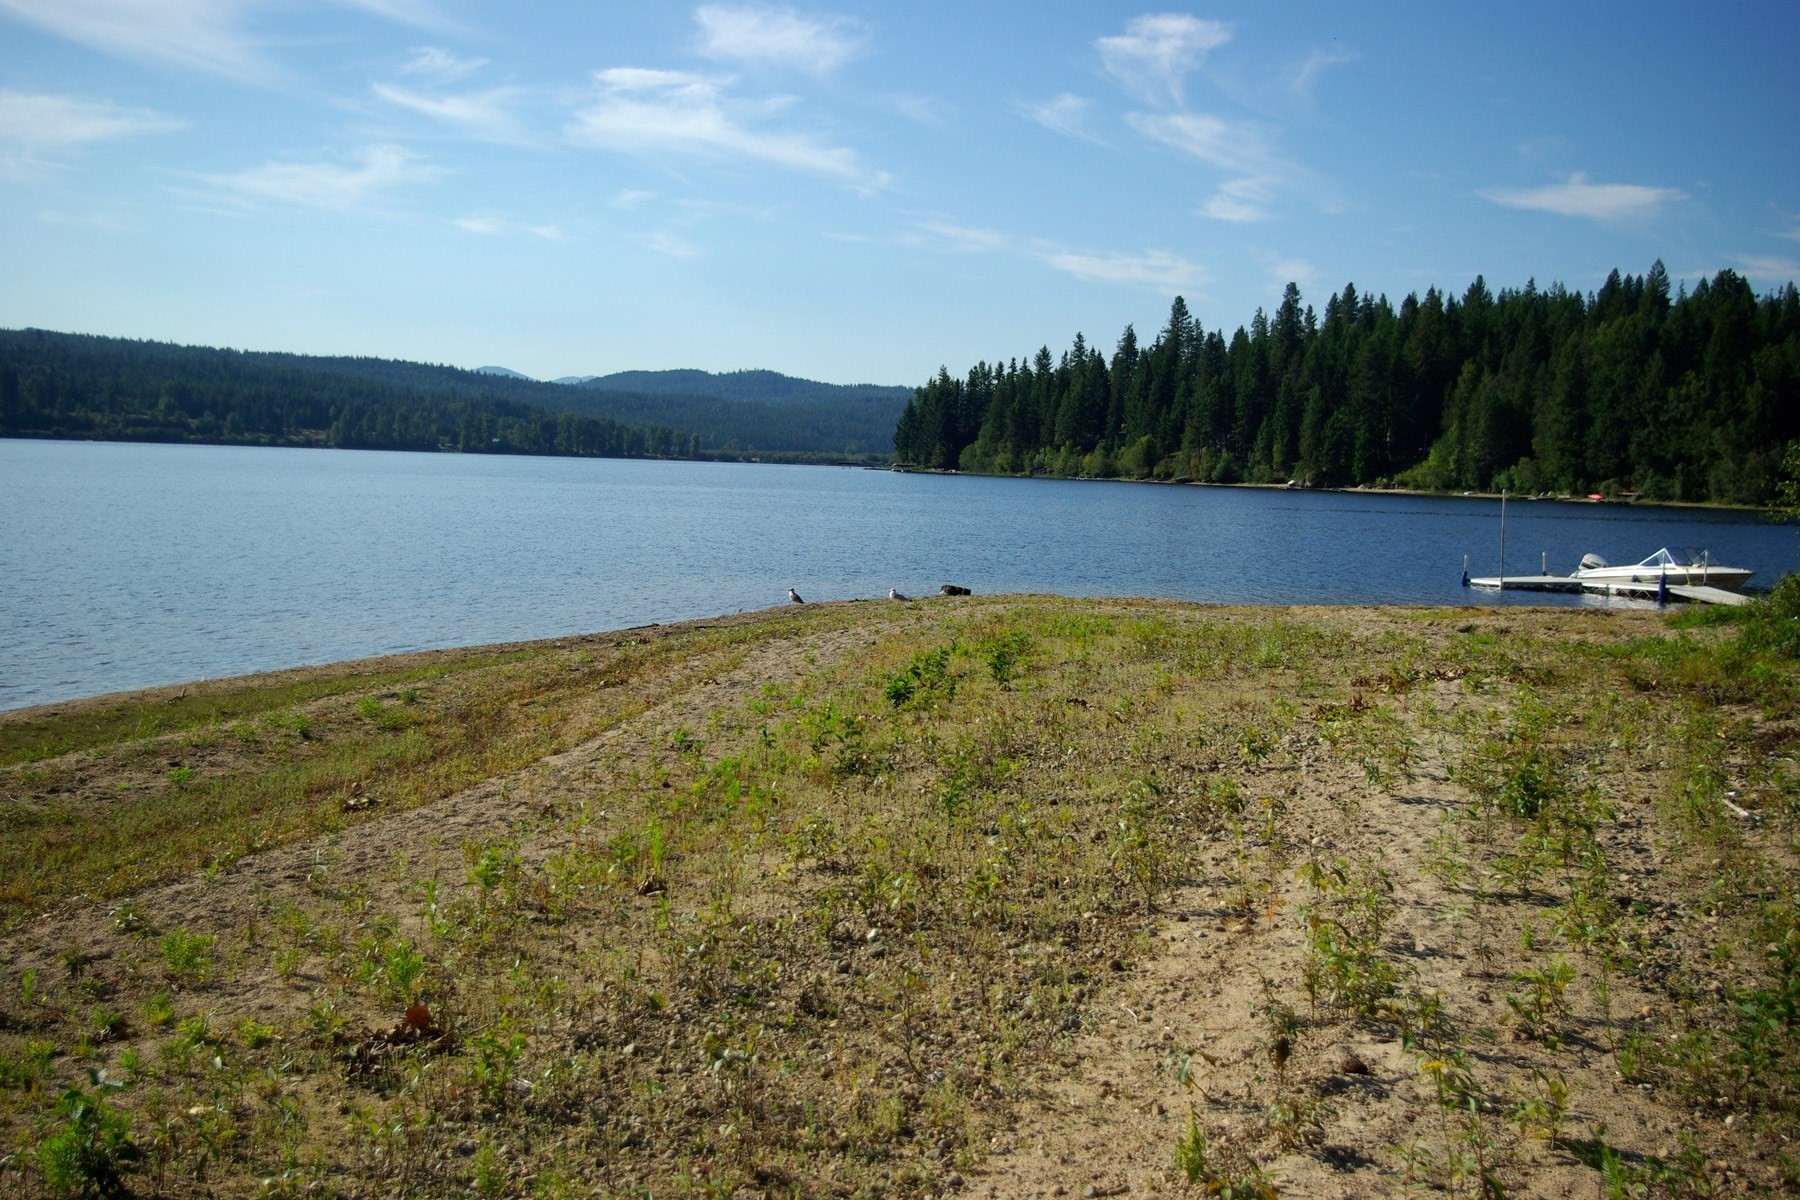 Terreno por un Venta en Your own private sandy beach on Lake Cocolalla, Lot 9 Lot 9 Sandy Beach Ln Cocolalla, Idaho 83813 Estados Unidos